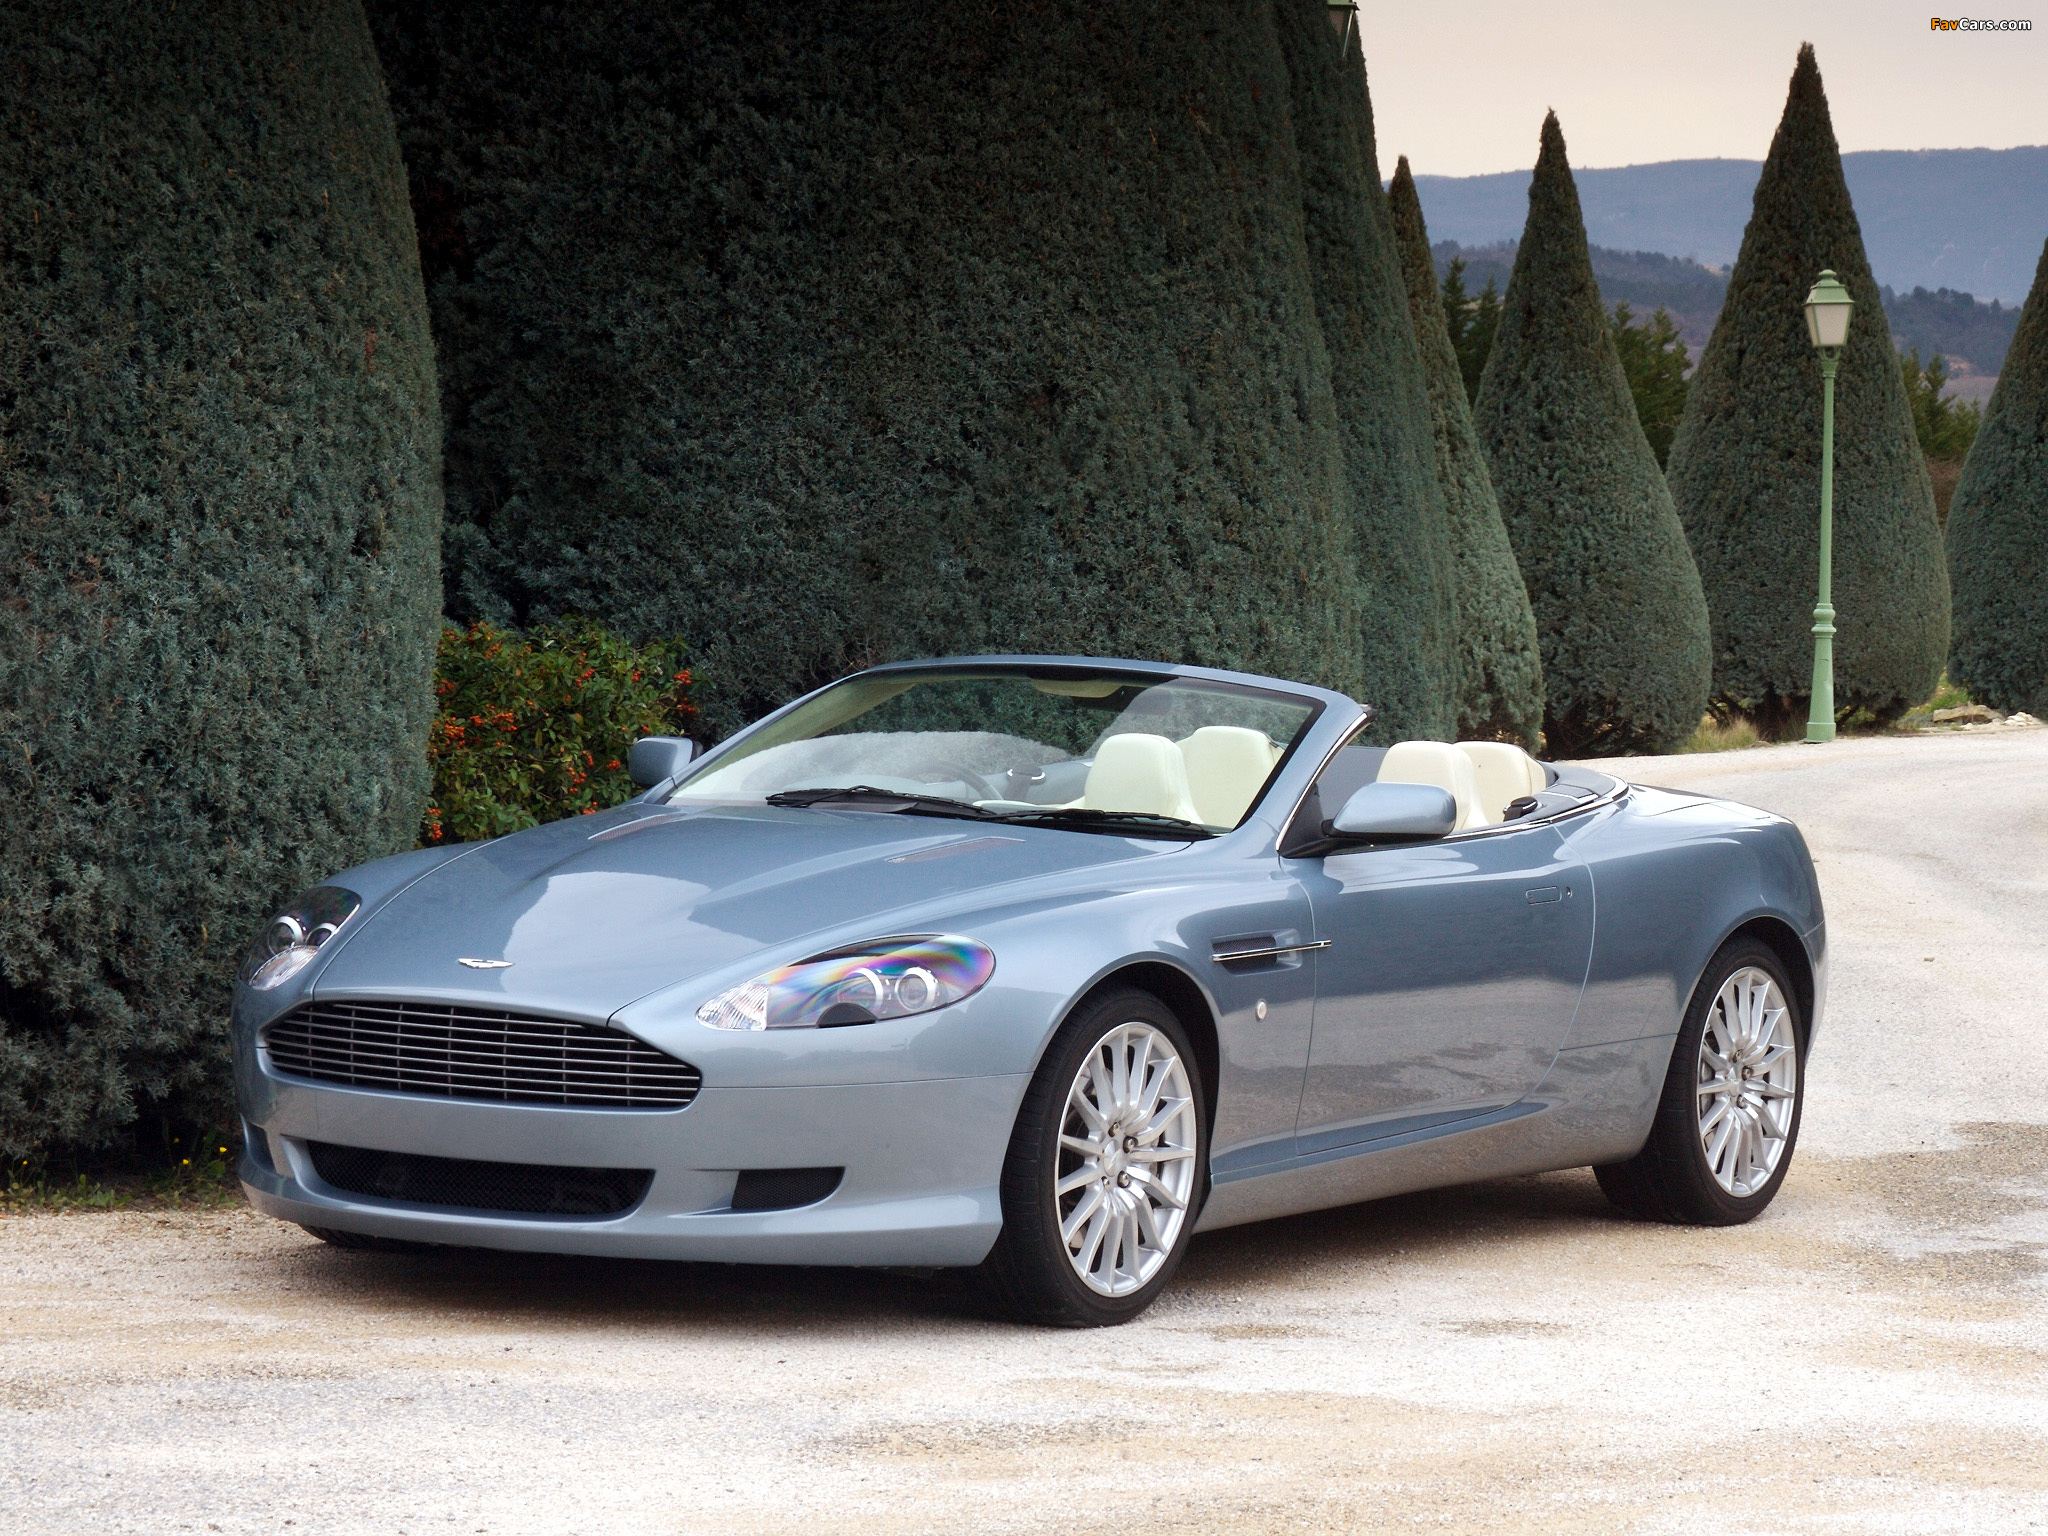 aston martin db9 volante with Aston Martin Db9 Volante 2004 2008 Wallpapers 146542 on Aston Martin Db9 Volante 2004 2008 Photos 146533 1024x768 in addition Astonmartin Hongkong together with Wallpaper 06 also 15057956 also Aston Martin Db9 Volante Review Pictures.